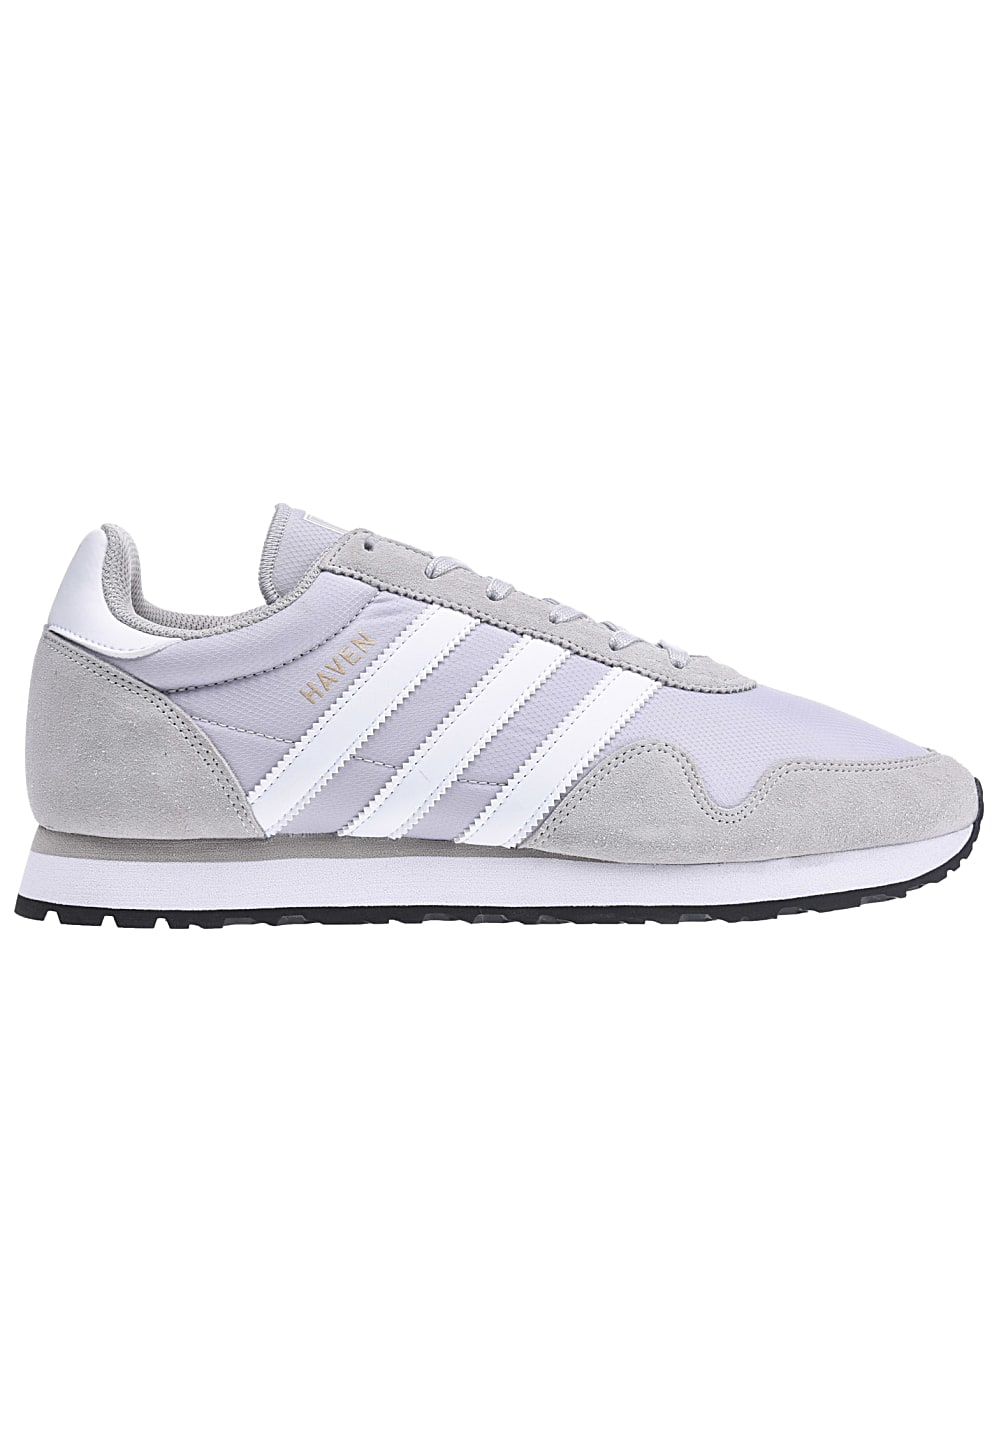 adidas Originals Haven - Sneaker für Herren - Grau